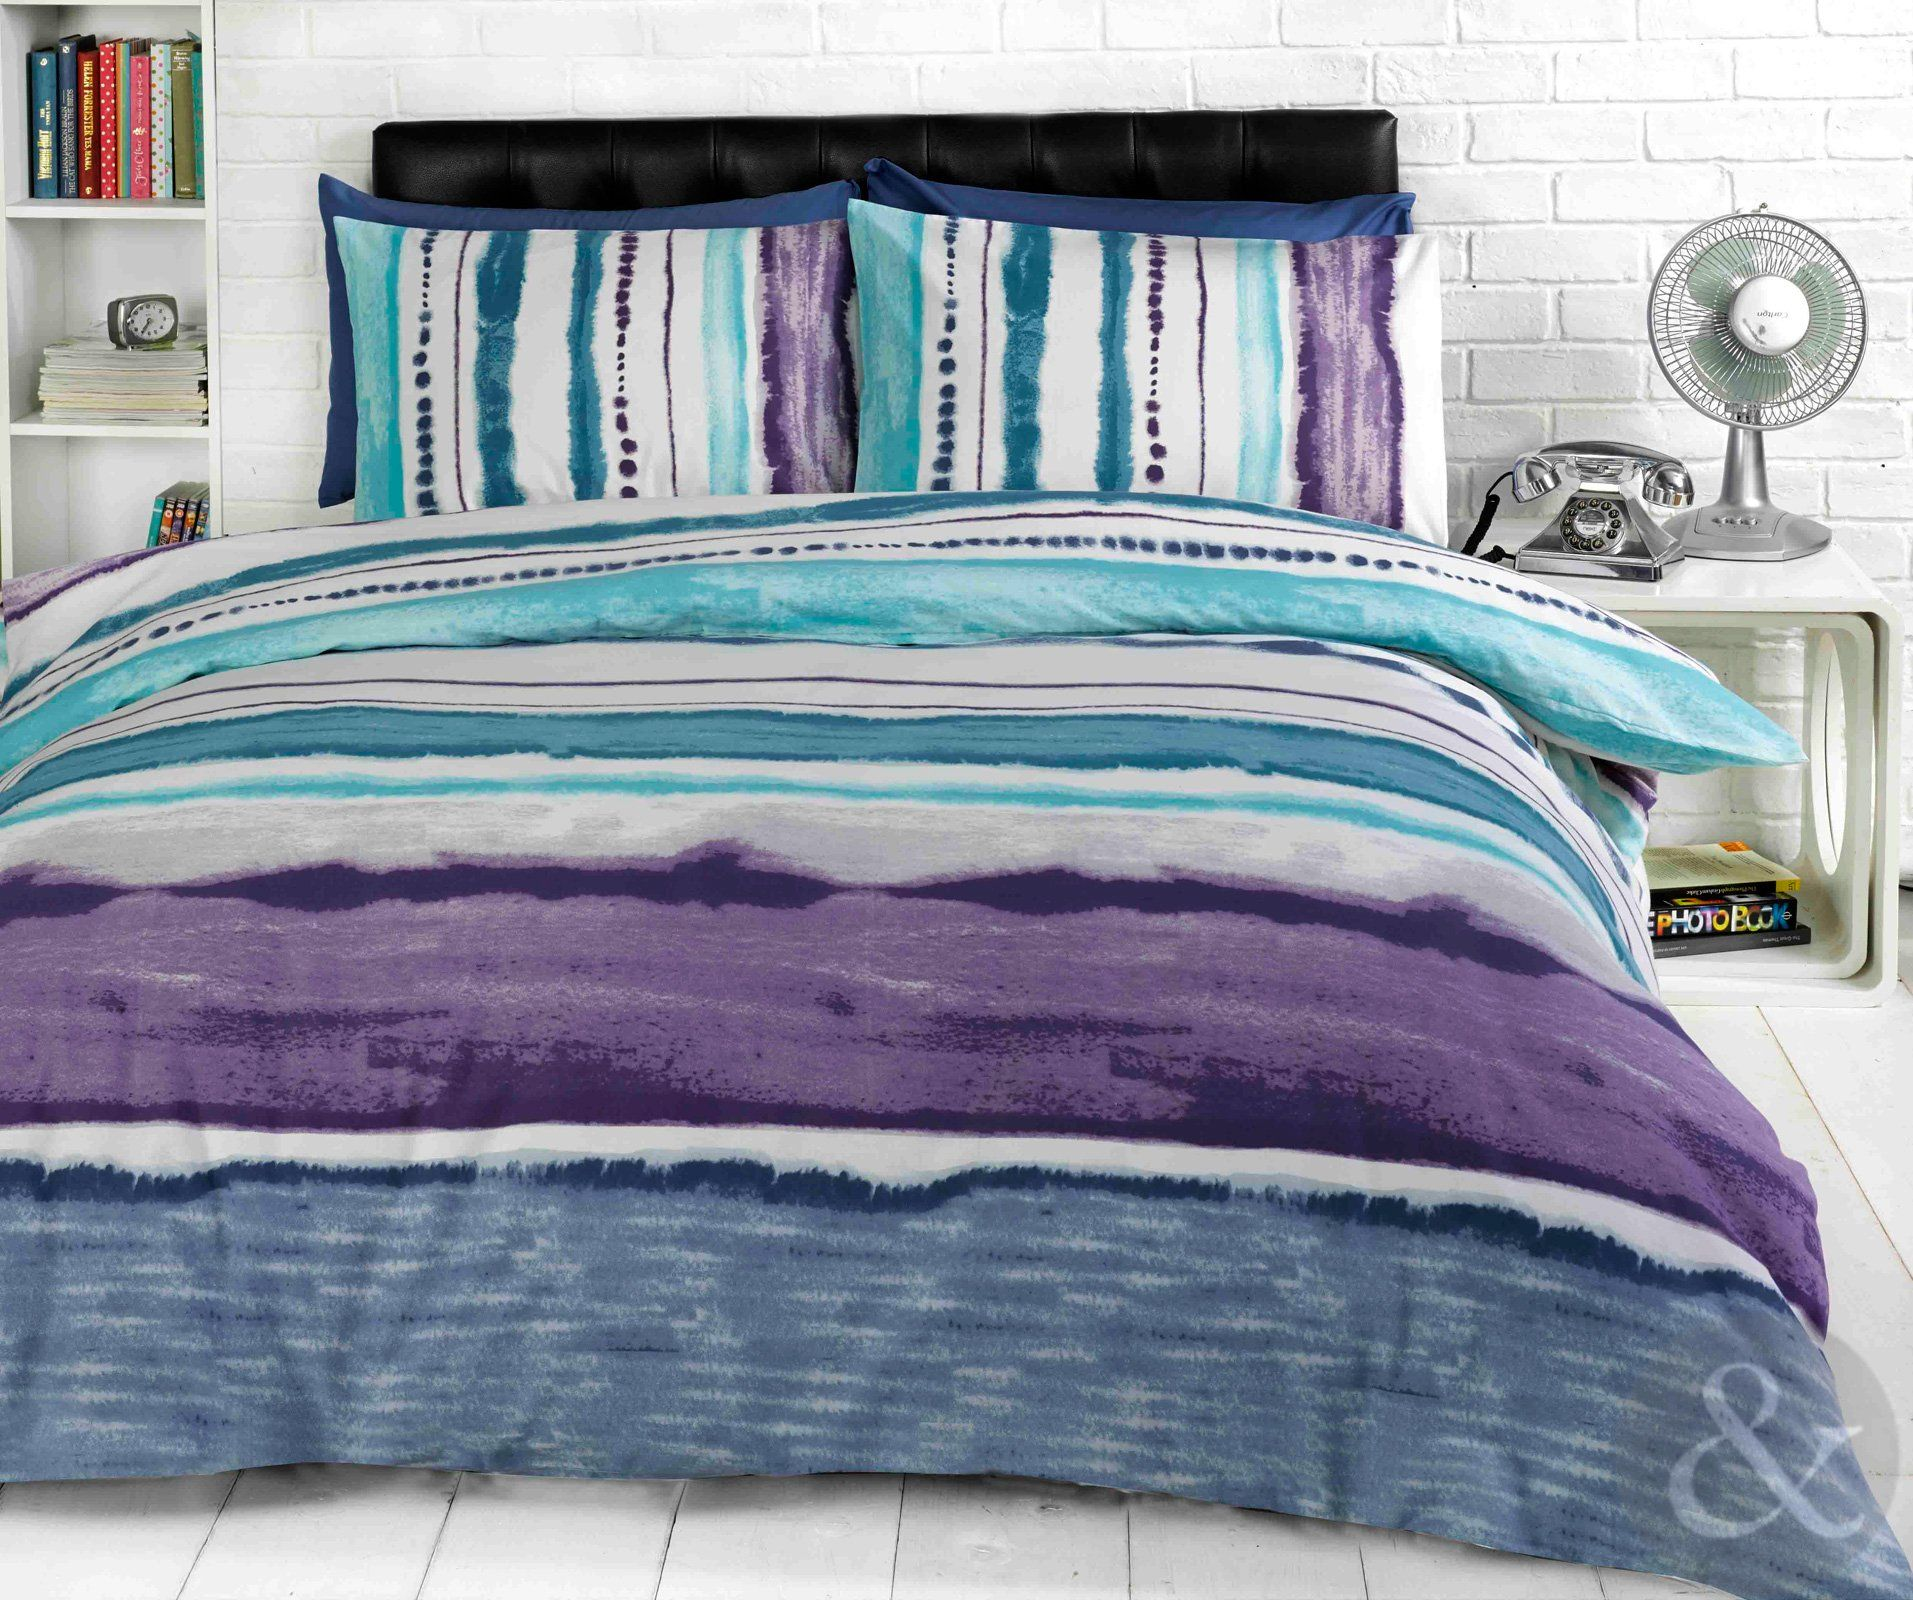 Cheap Doona Covers Tye Dye Printed Bedding Contemporary Striped Duvet Cover